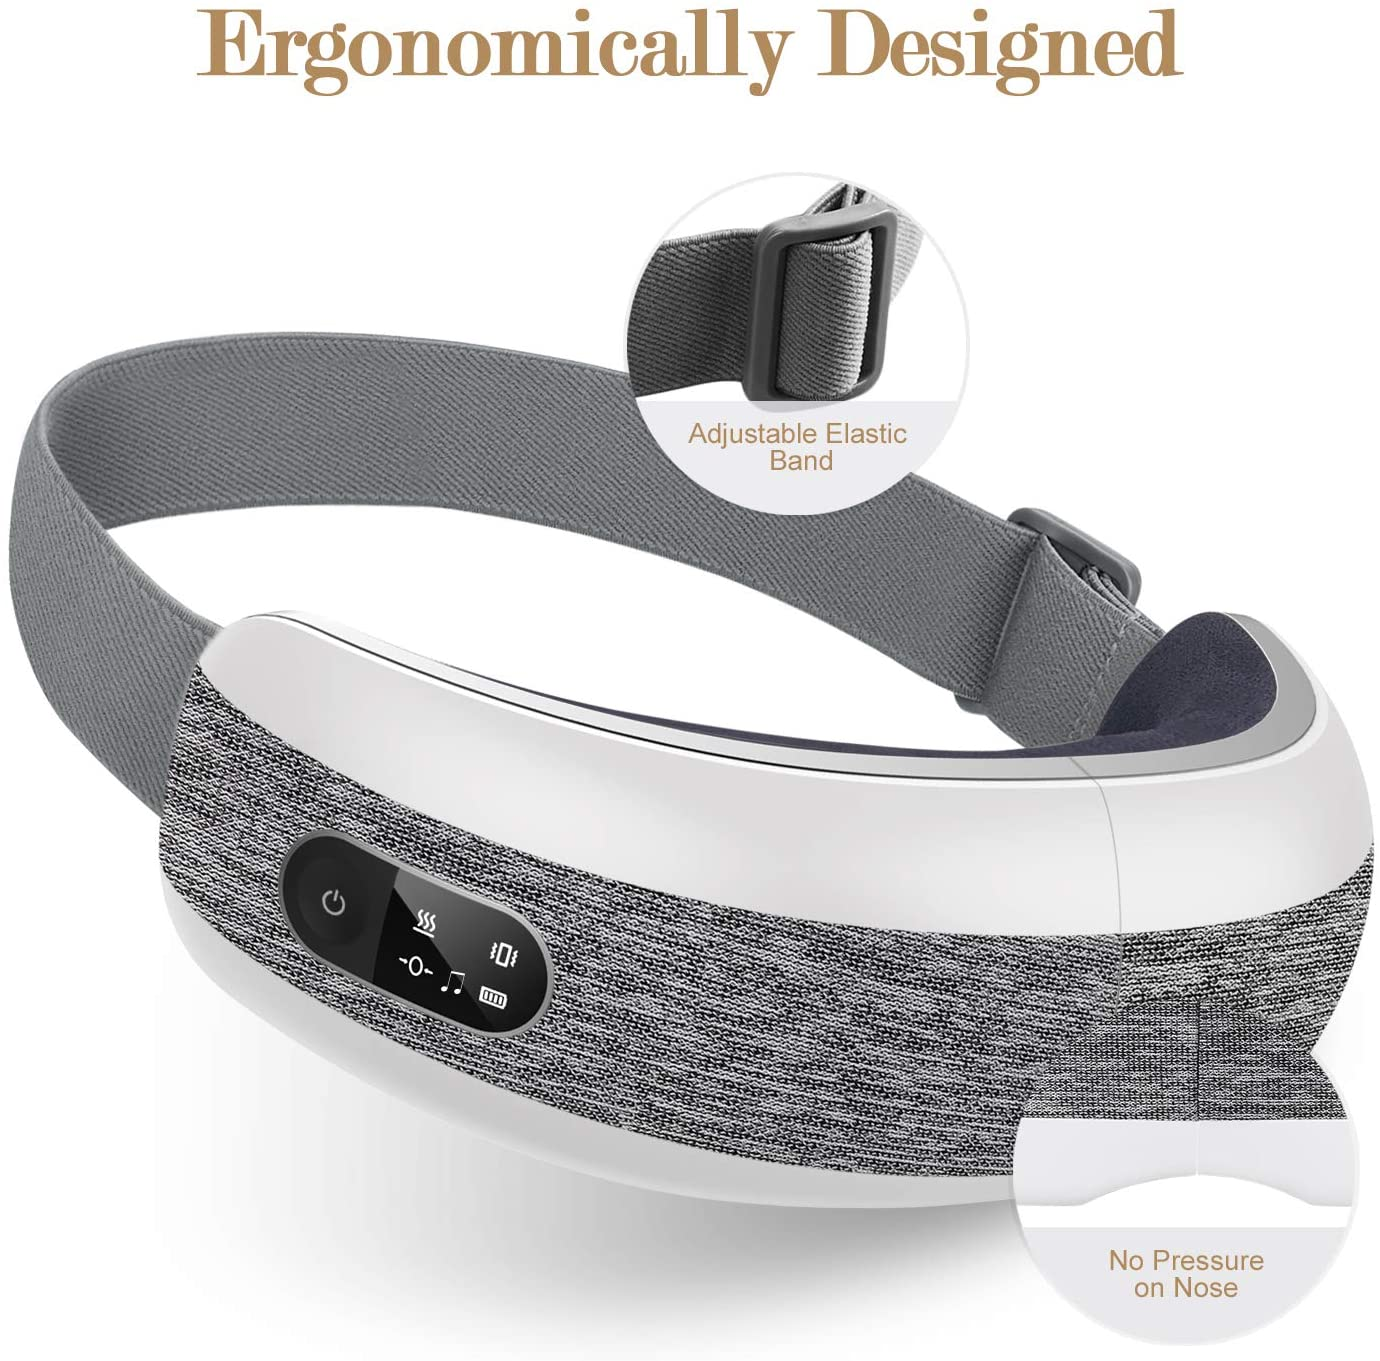 Eye massager showing adjustable elastic band and no pressure on nose